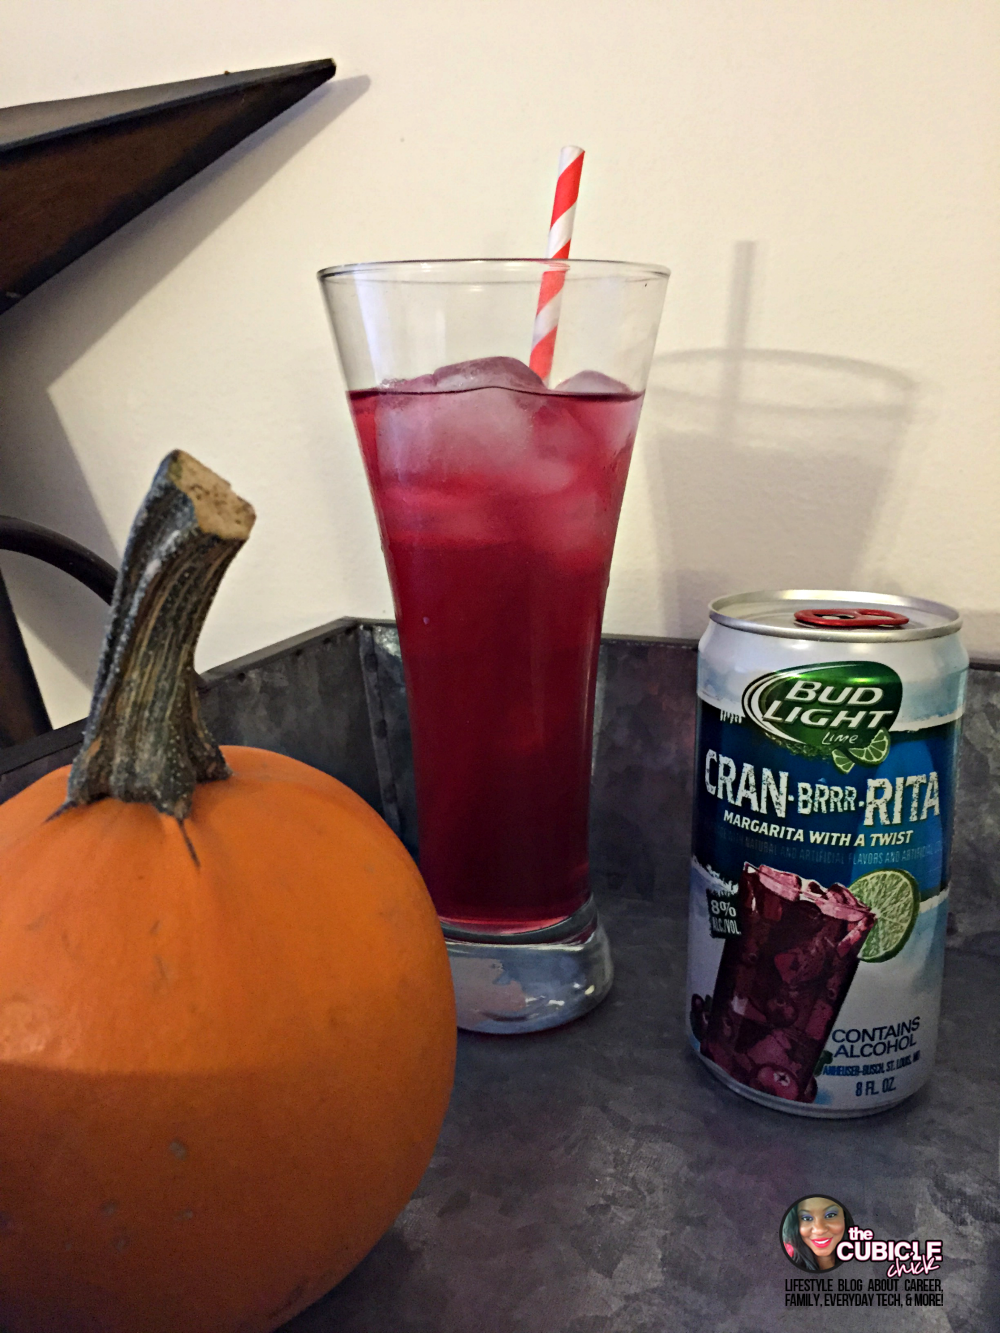 Celebrate the Holiday Season with Bud Light Lime Cran-Brrr-Ritas {Sponsored} #FiestaForever #GLAMFiestaForever